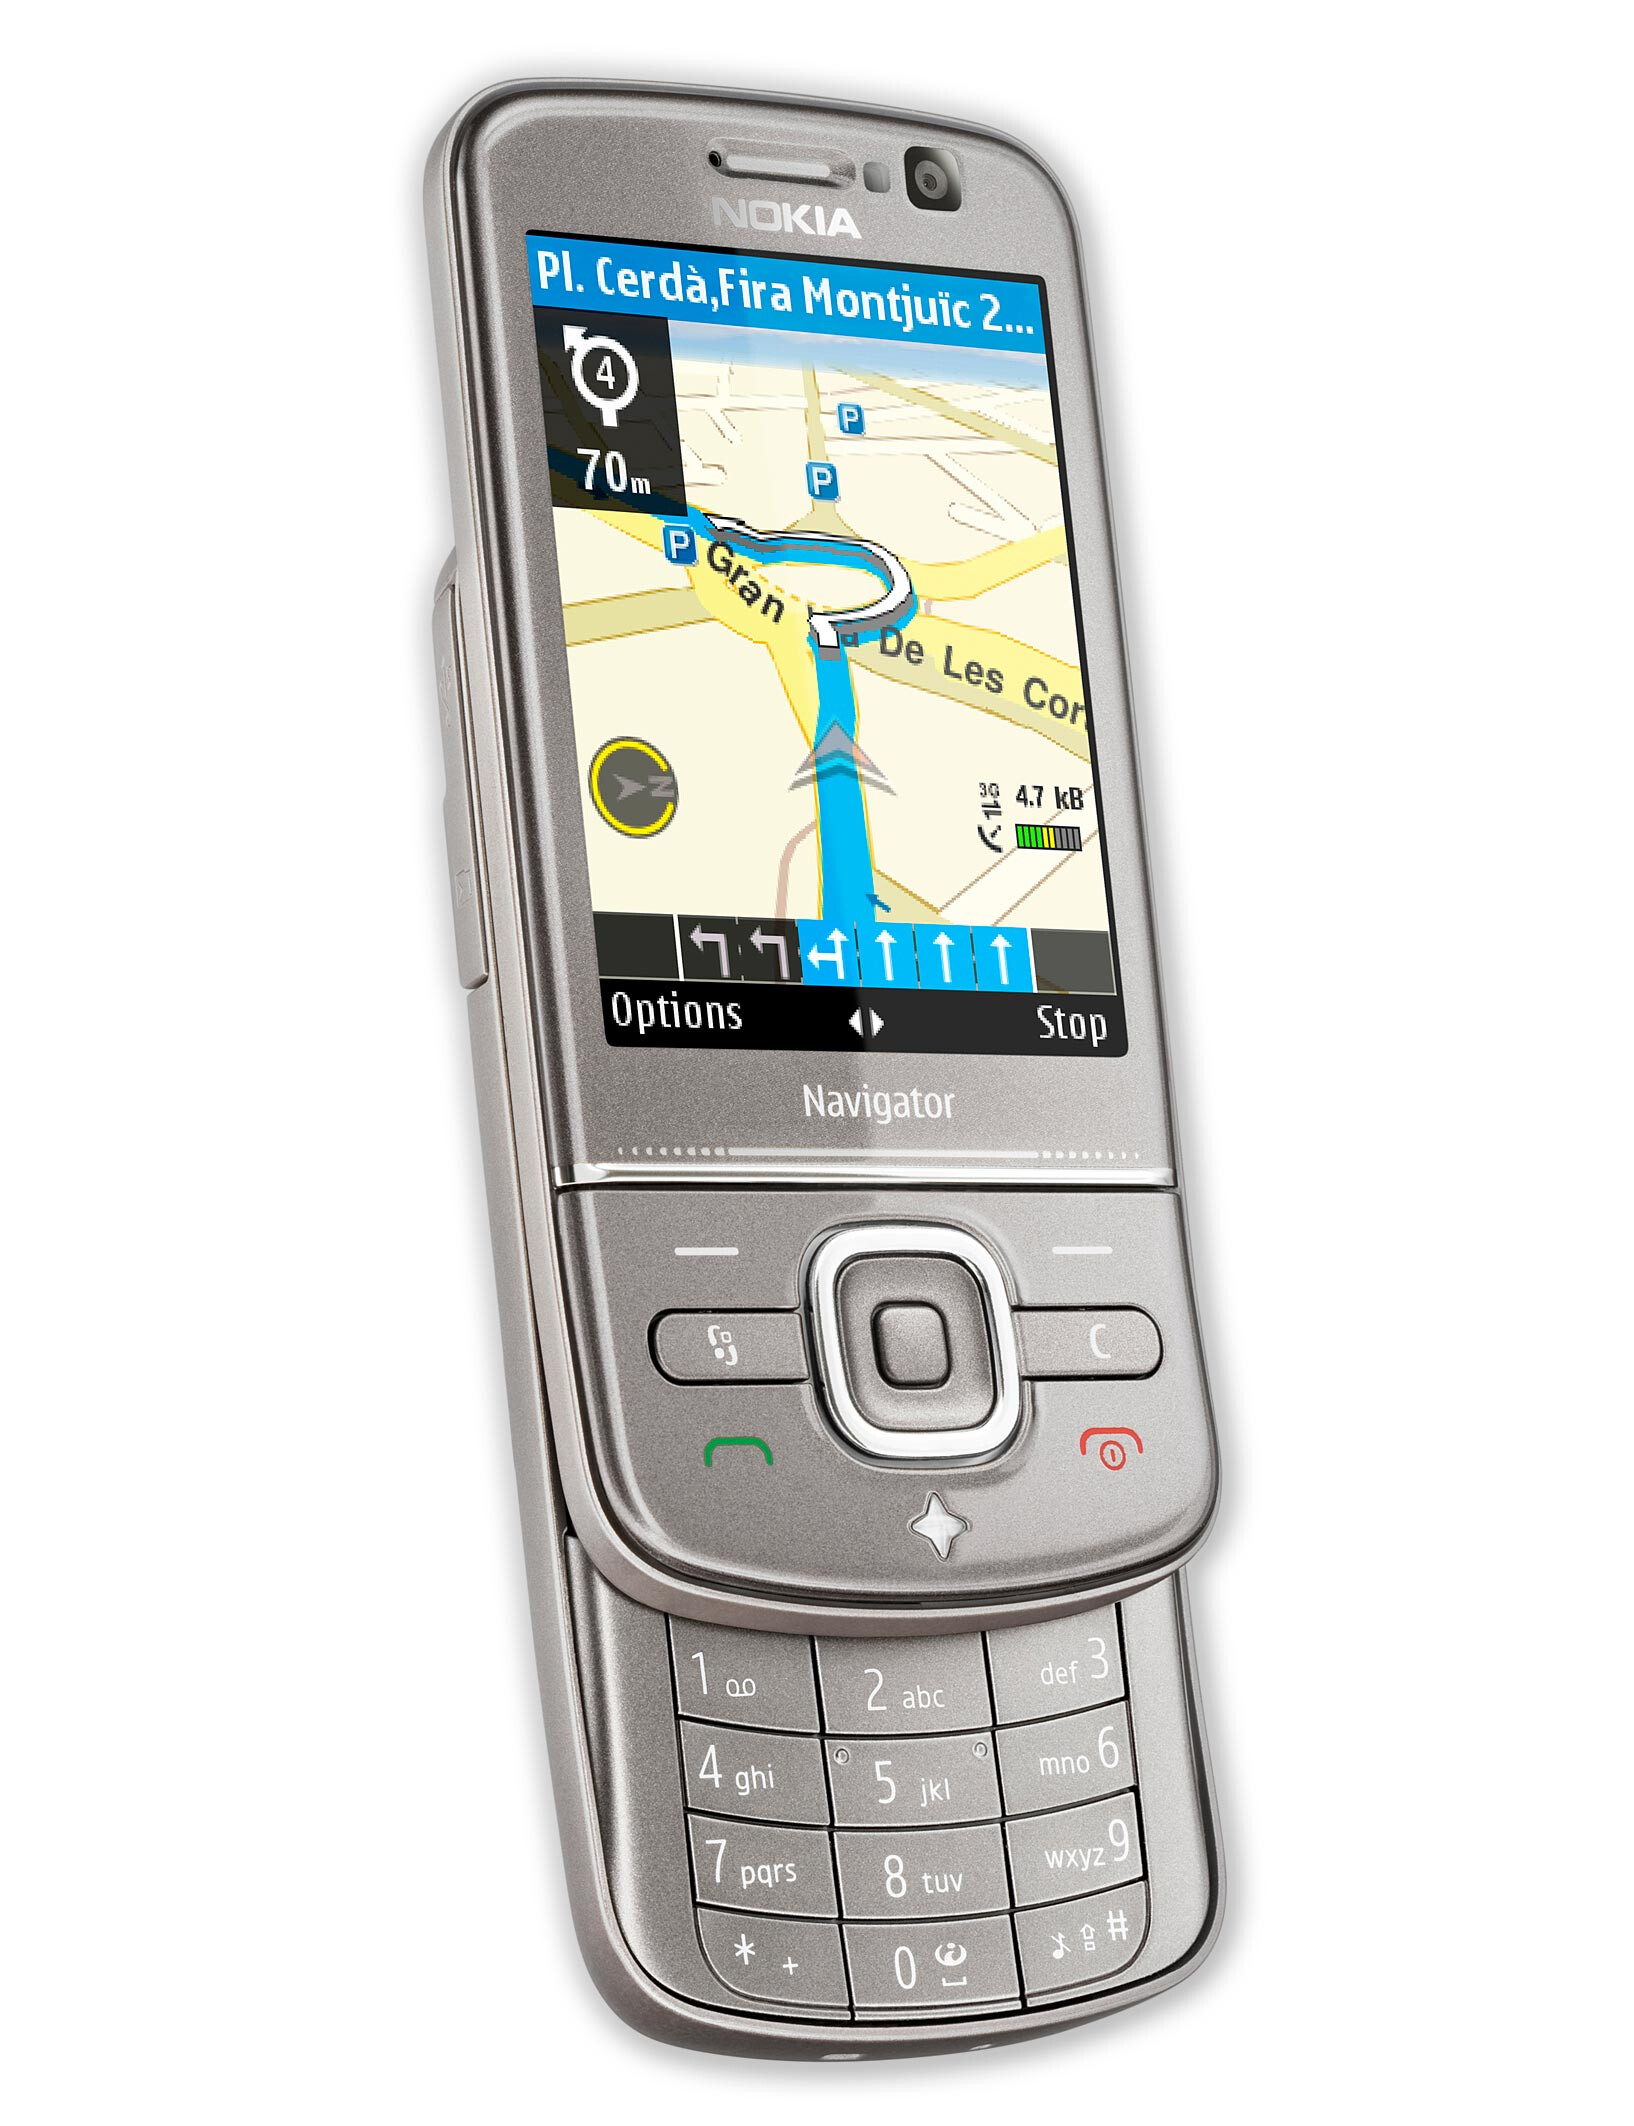 Nokia 6710 Navigator in the Test